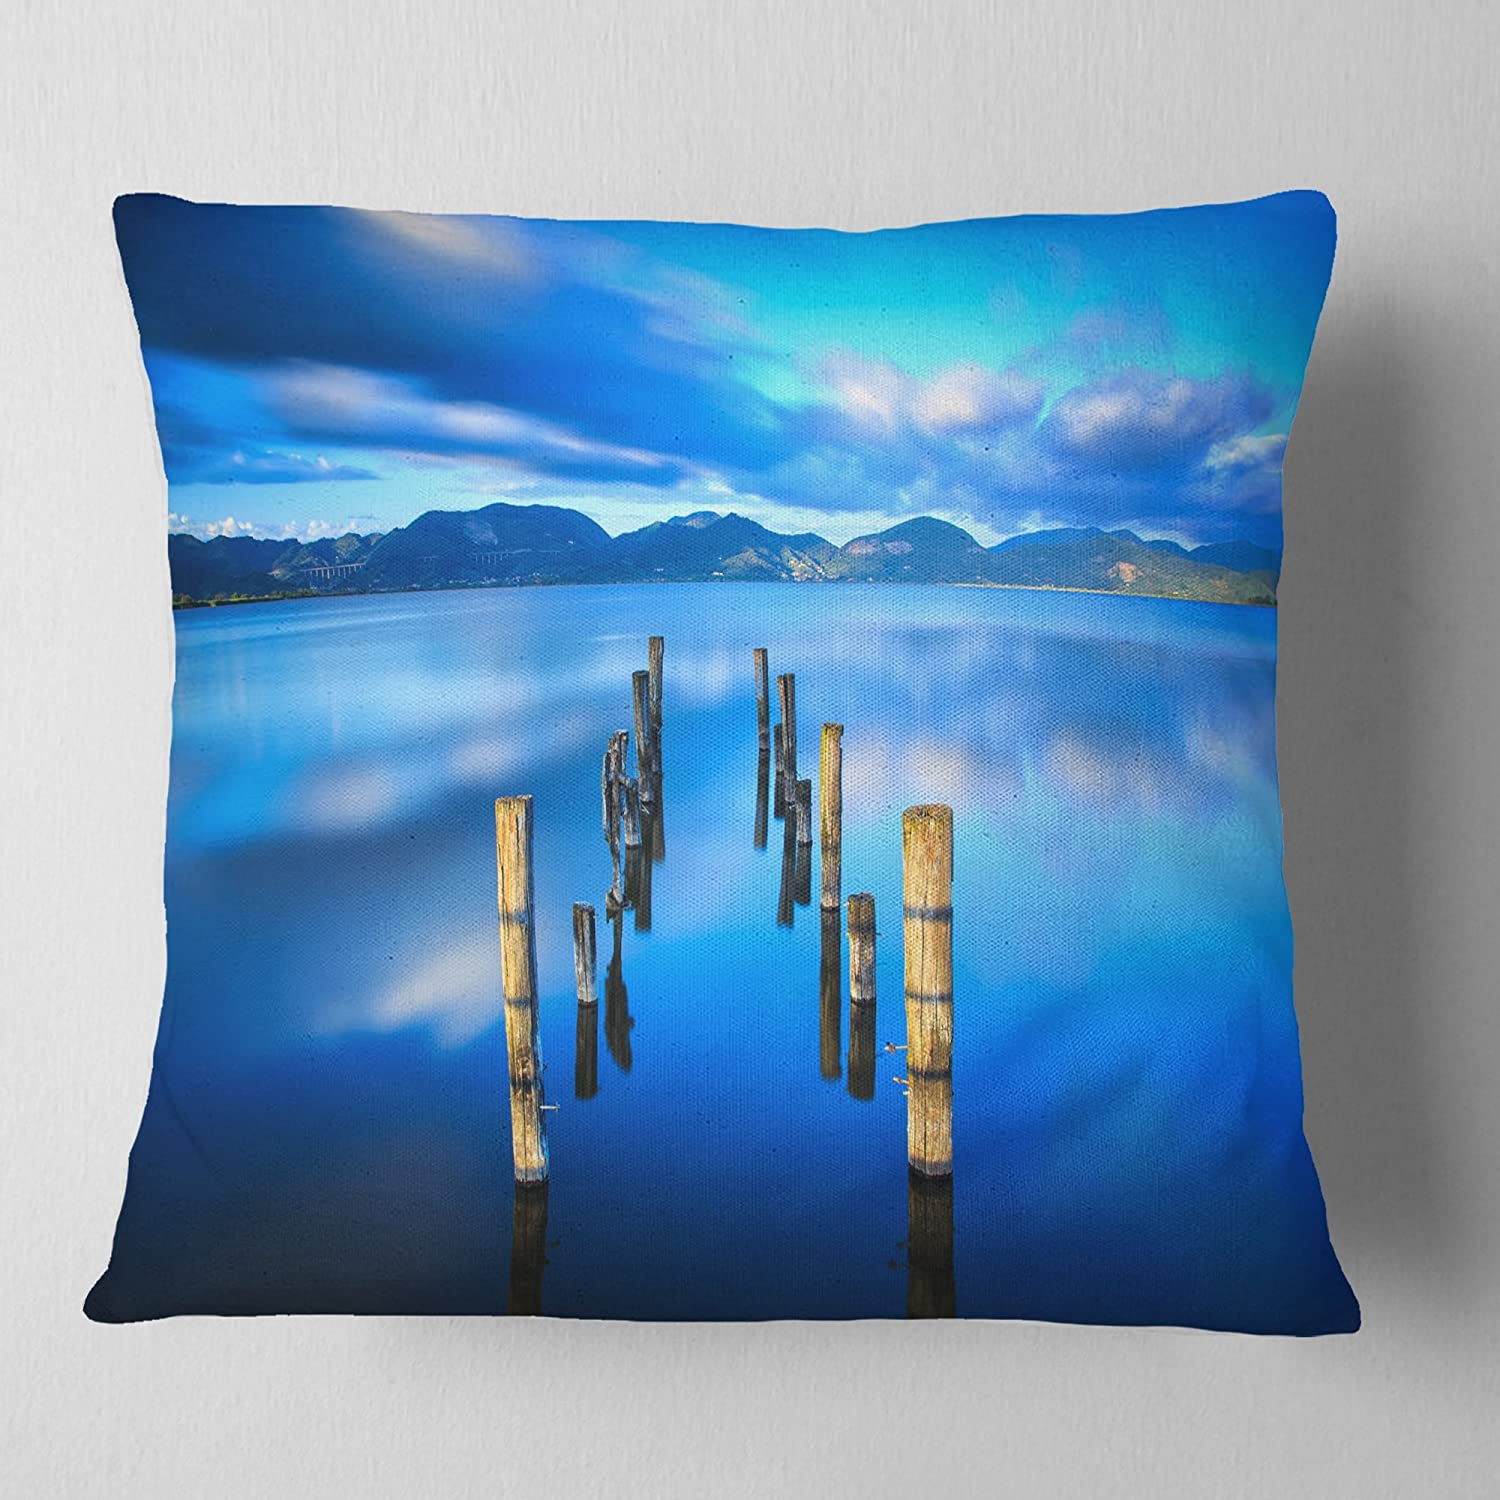 ArtVerse Katelyn Smith 20 x 20 Poly Twill Double Sided Print with Concealed Zipper /& Insert Virginia Love Watercolor Pillow